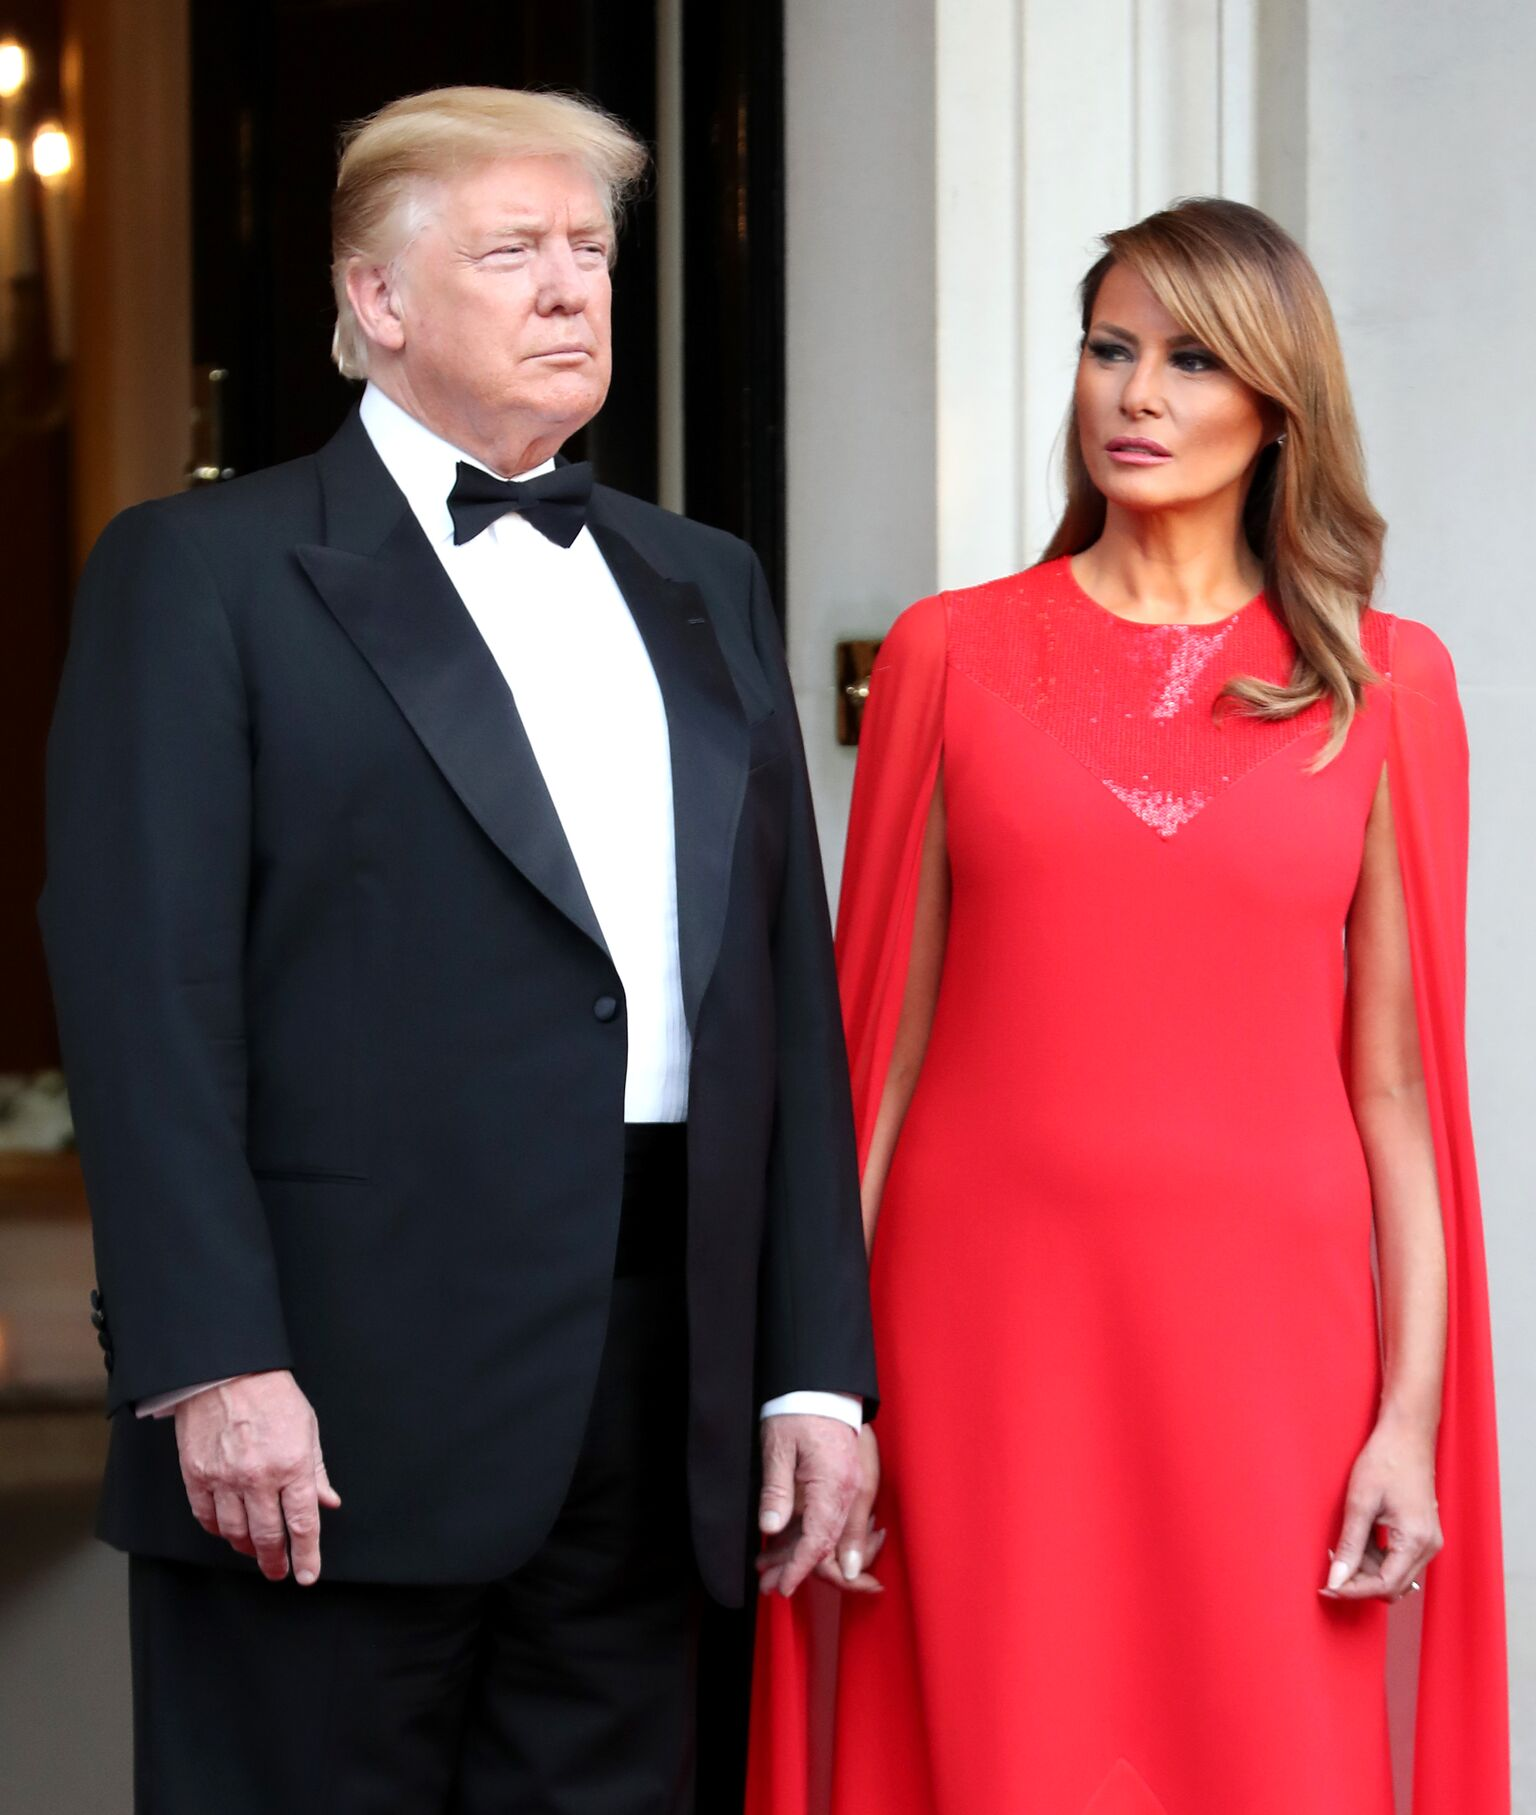 President Donald Trump and First Lady Melania Trump pose ahead of a dinner at Winfield House for Prince Charles, Prince of Wales and Camilla, Duchess of Cornwall, during their state visit on June 04, 2019 | Photo: Getty Images